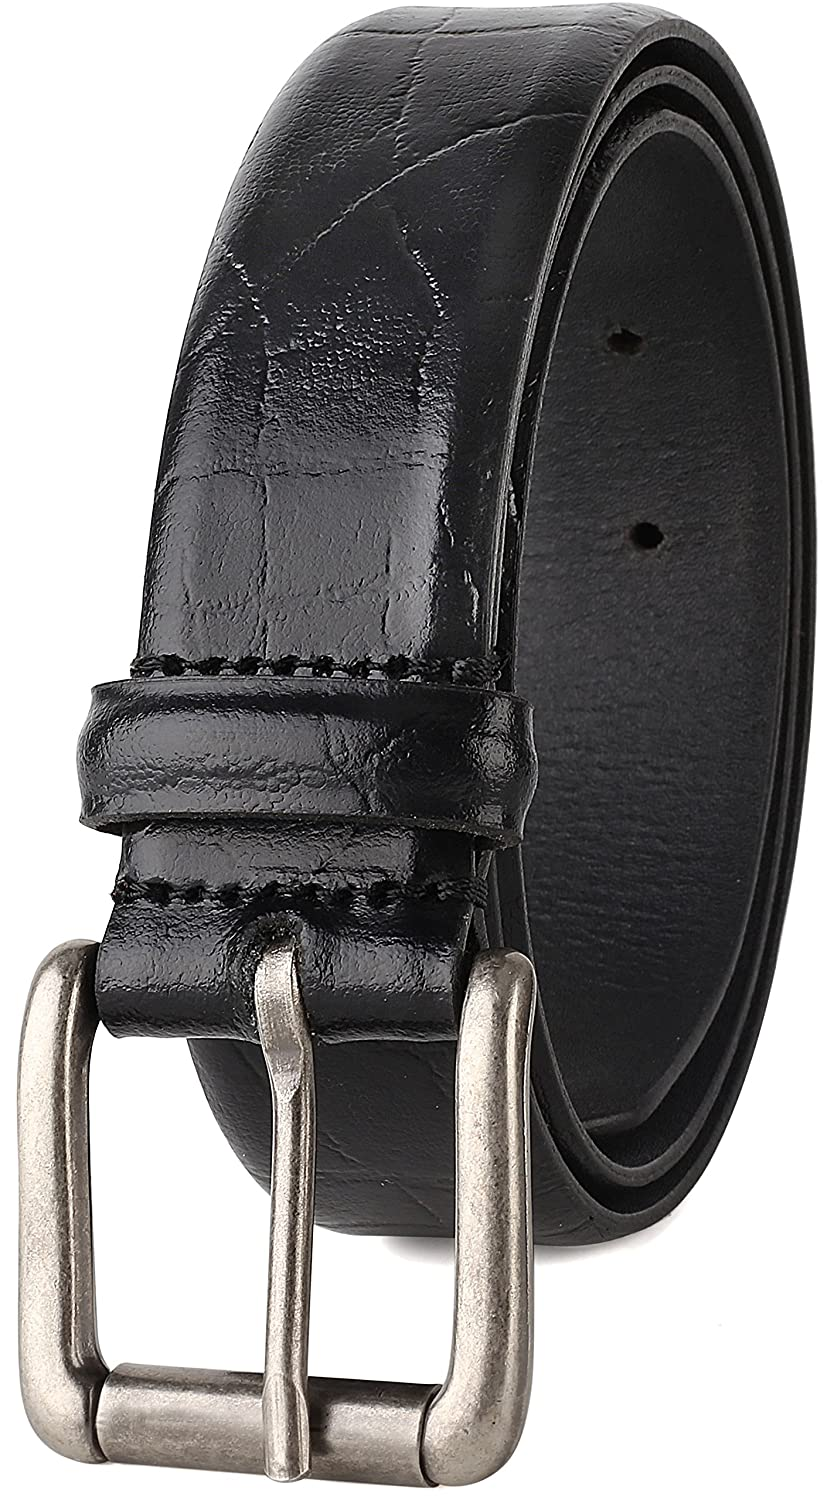 USA 1-3//8 Wide Mens Leather Classic Dress belt Roller Buckle